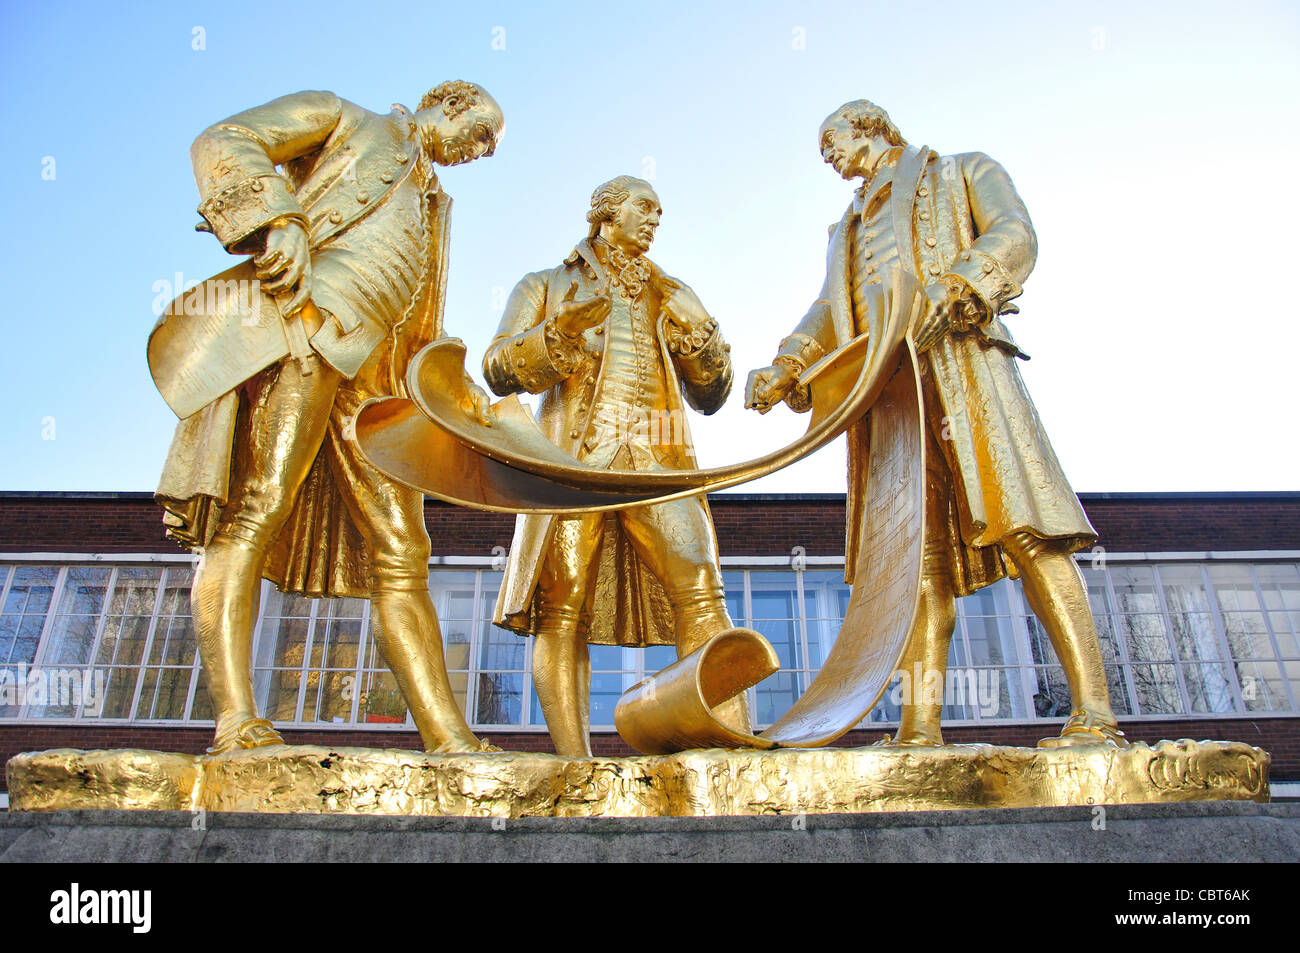 Guilded statue of Boulton, Watt and Murdoch, Broad Street, Birmingham, West Midlands, England, United Kingdom - Stock Image